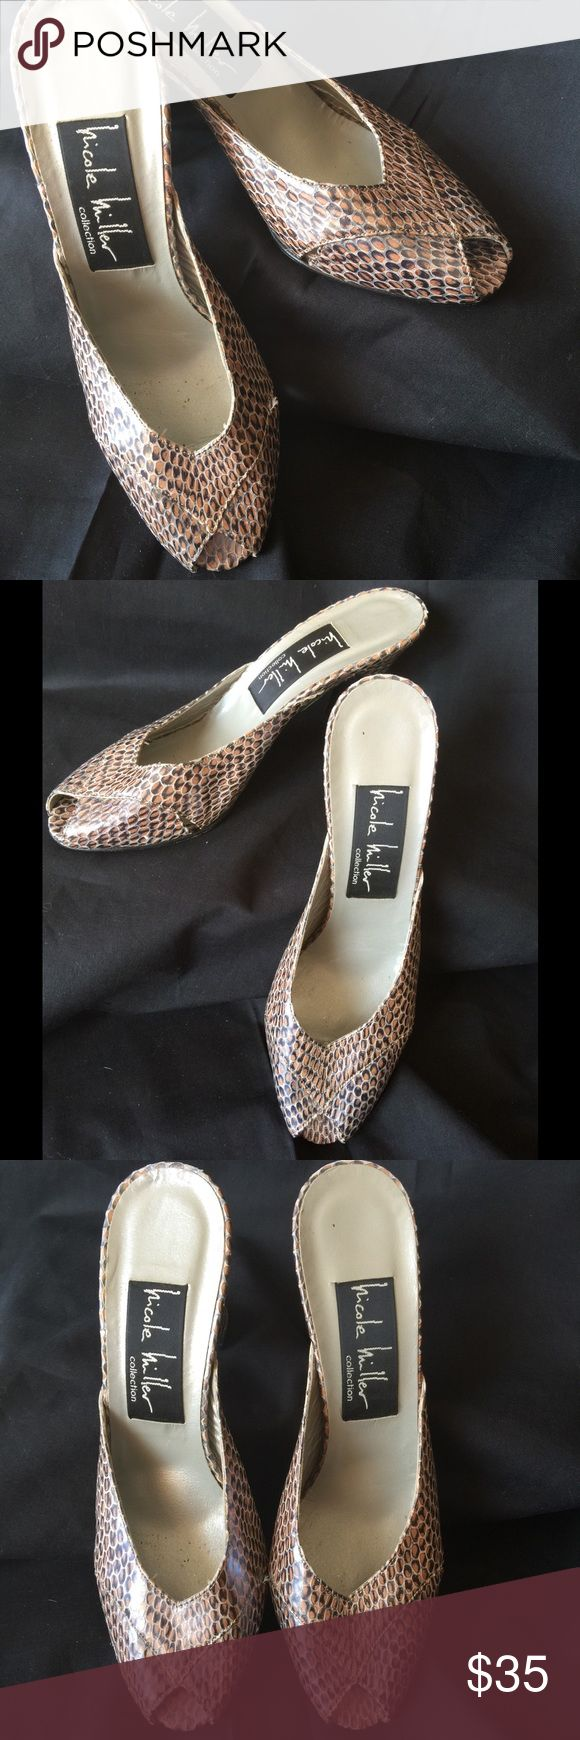 Leather Nicole Miller Mules Made in Italy all leather mules for Nicole Miller, worn couple times only inside, great snakeskin leather Nicole Miller Shoes Mules & Clogs